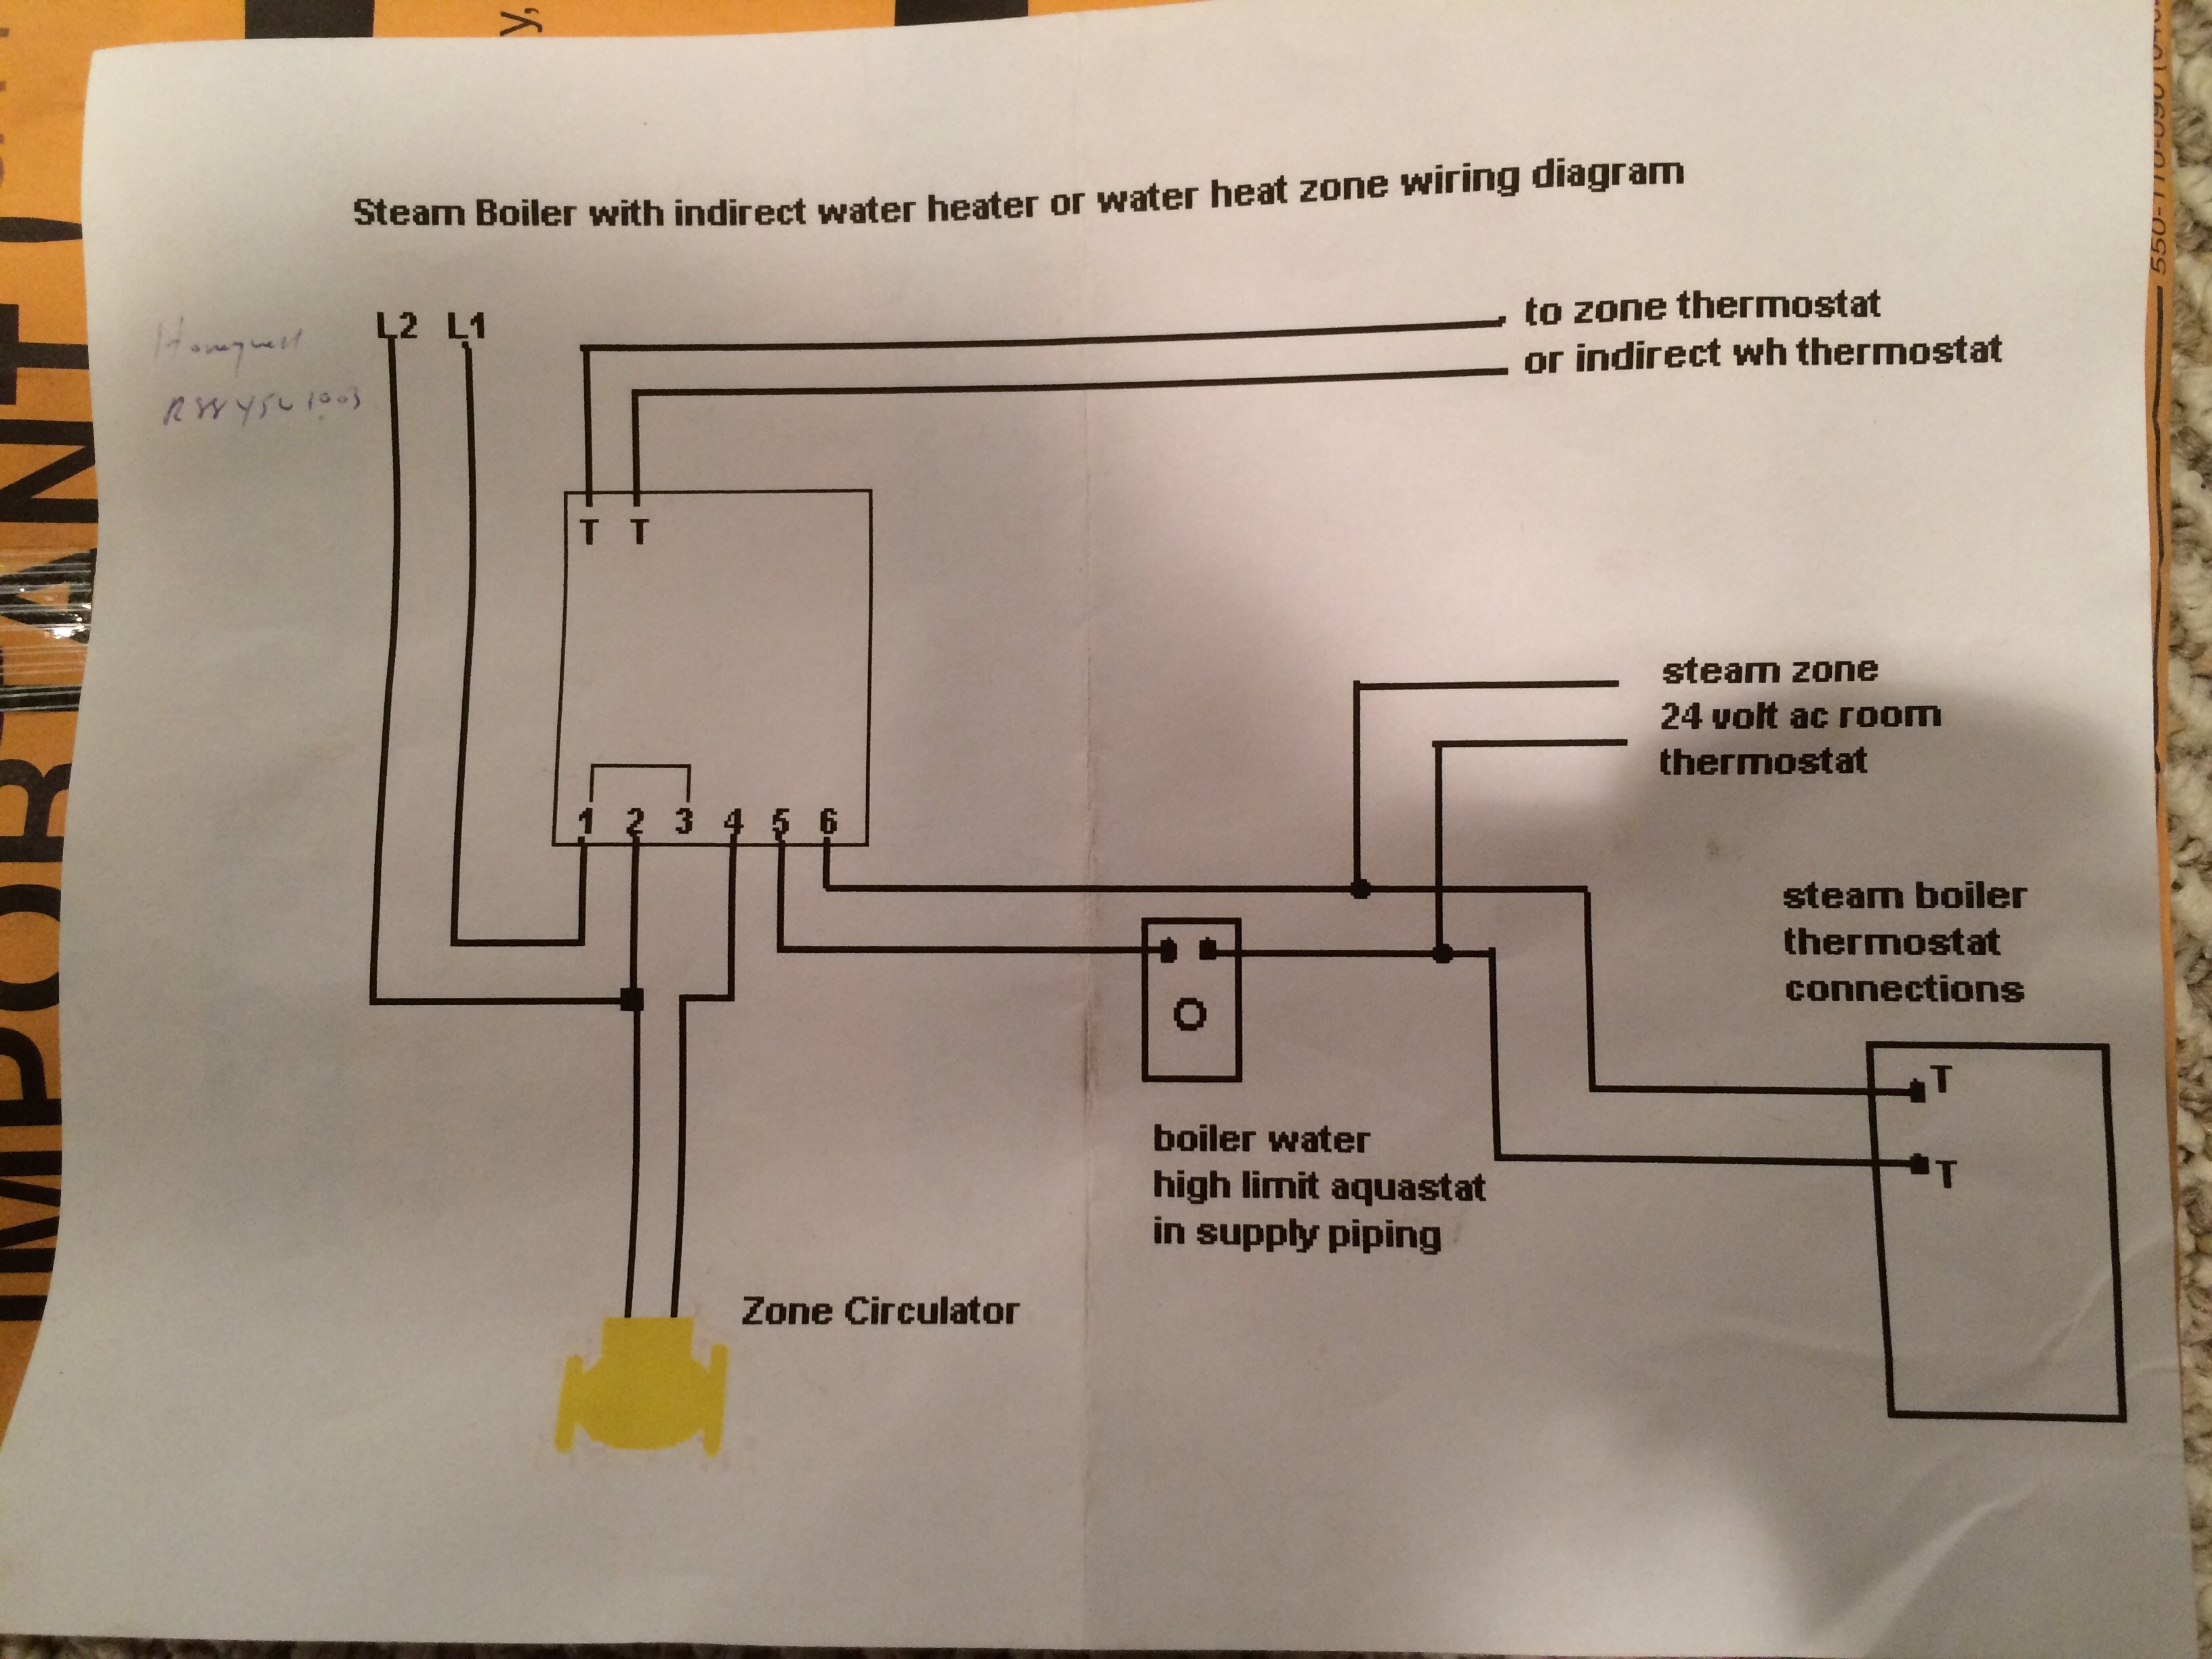 scully thermistor wiring diagram mercedes t1 adding baseboard to steam boiler  heating help the wall